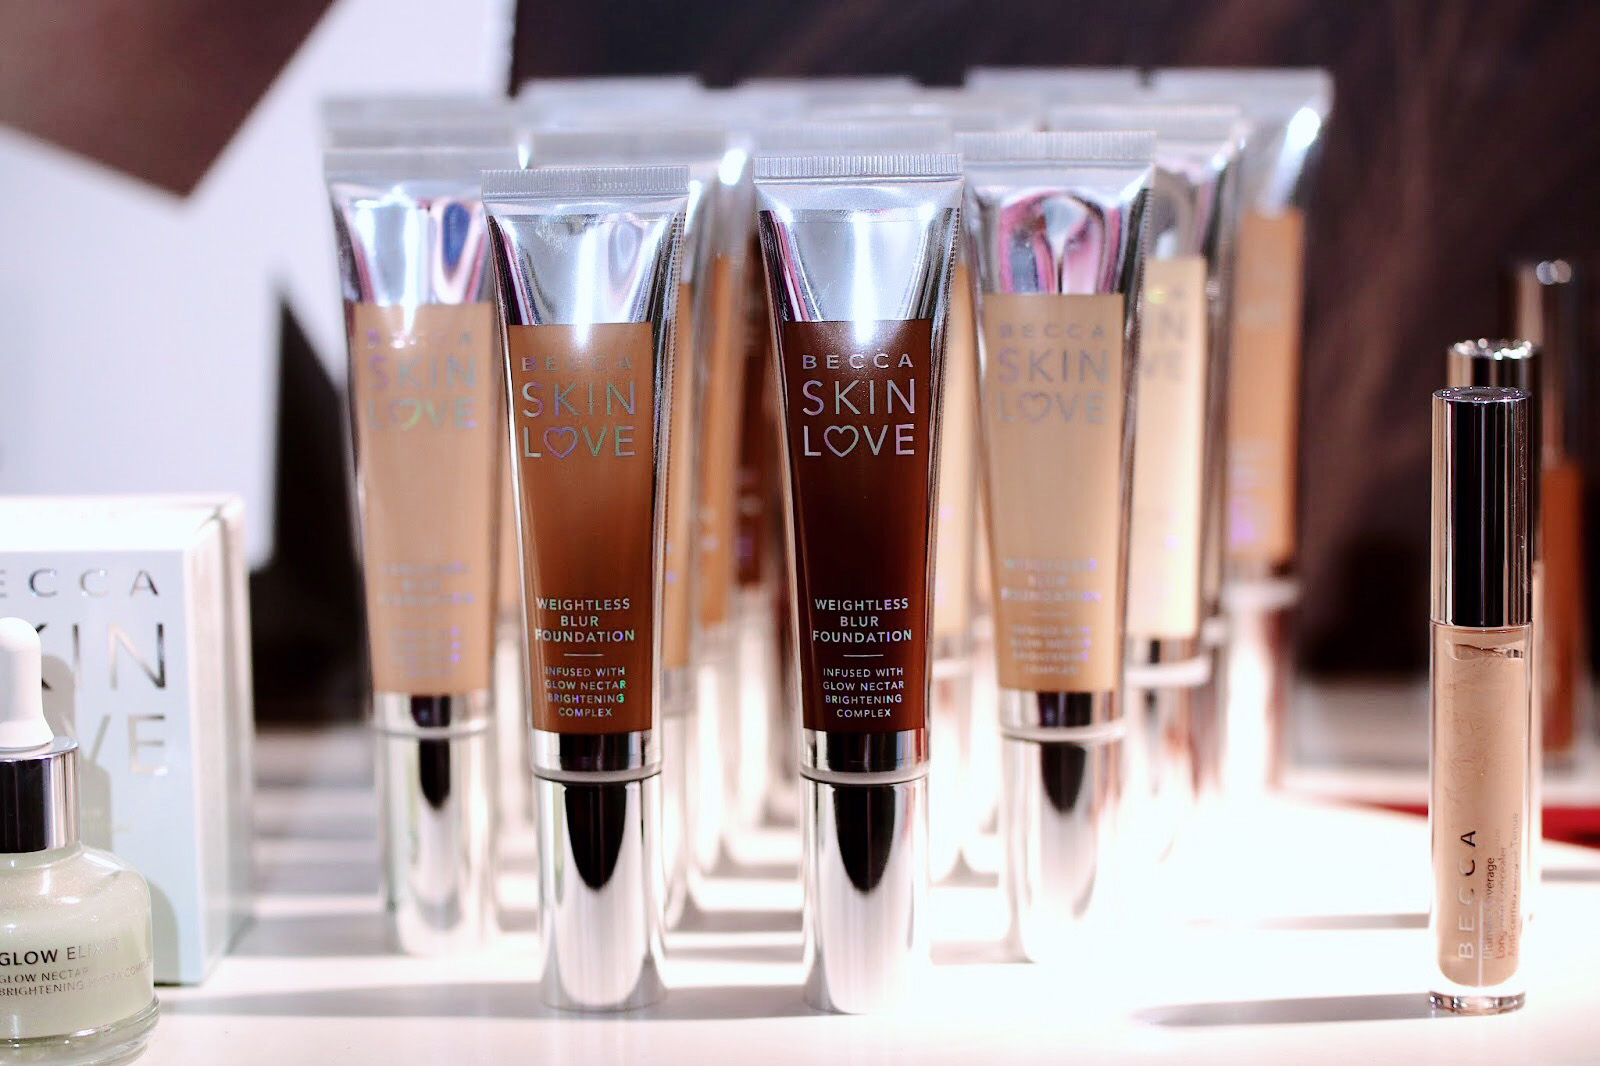 becca collection noel 2018 automne fall skin love chrissy tigen